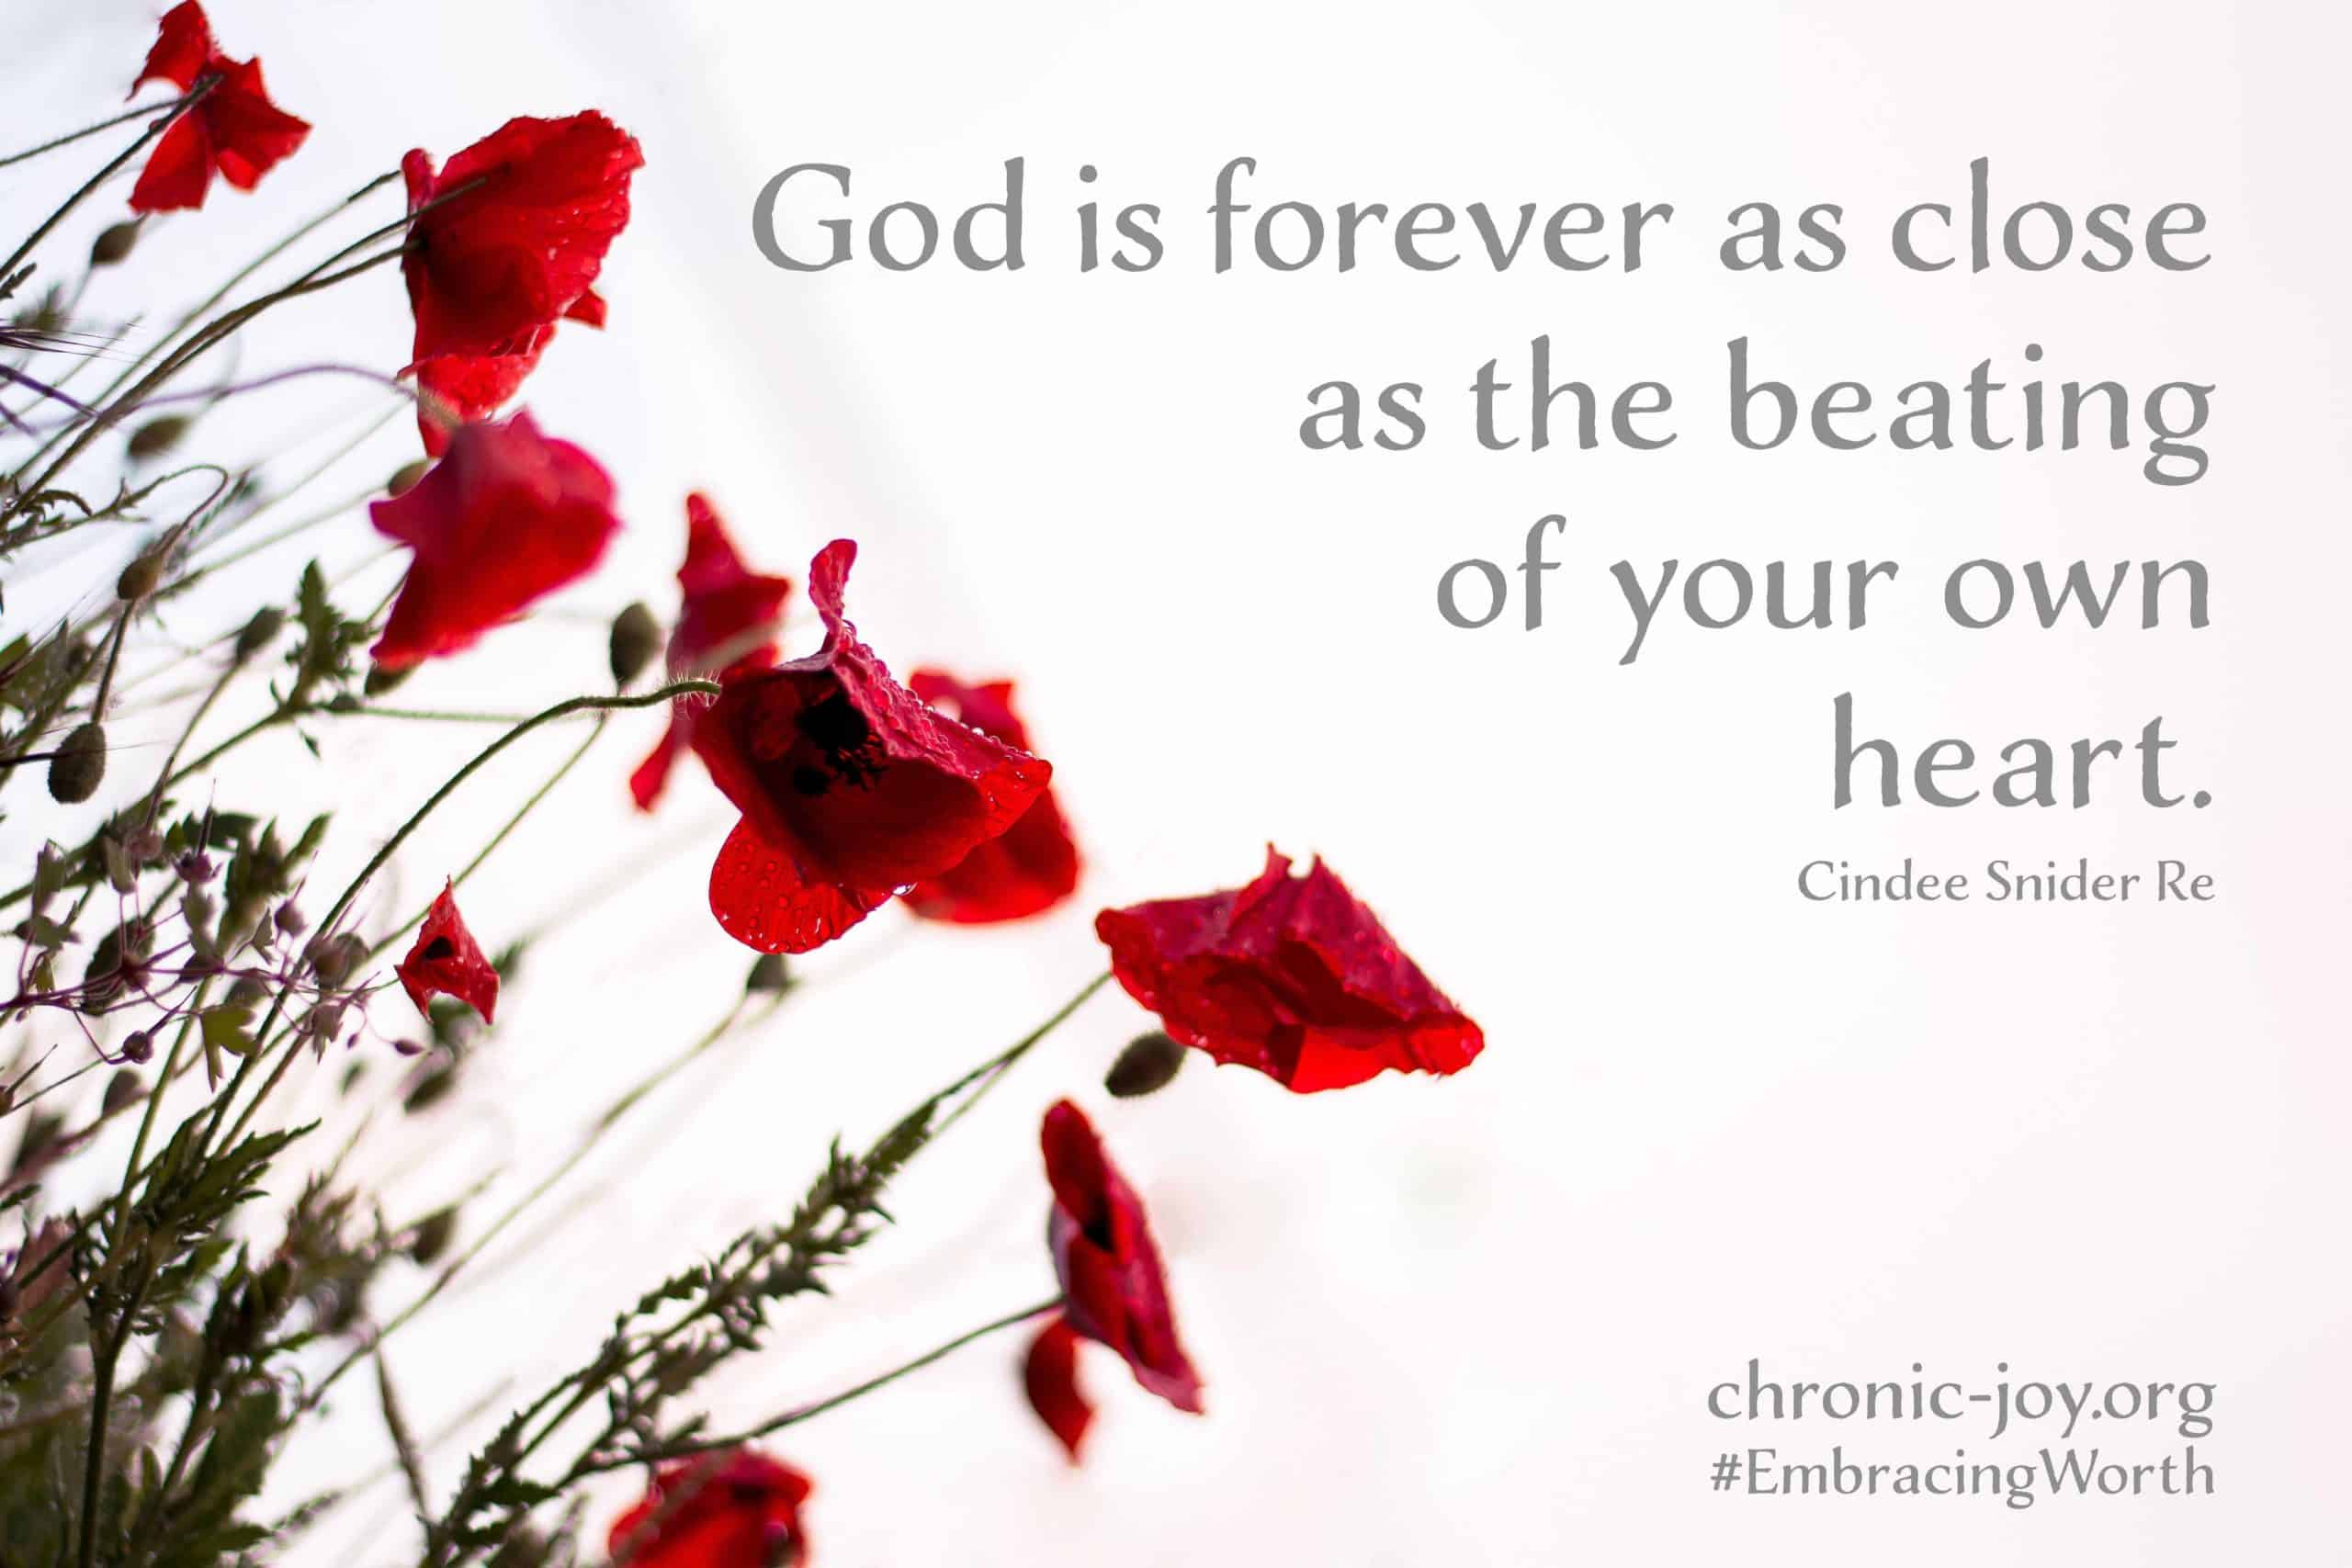 God is forever close